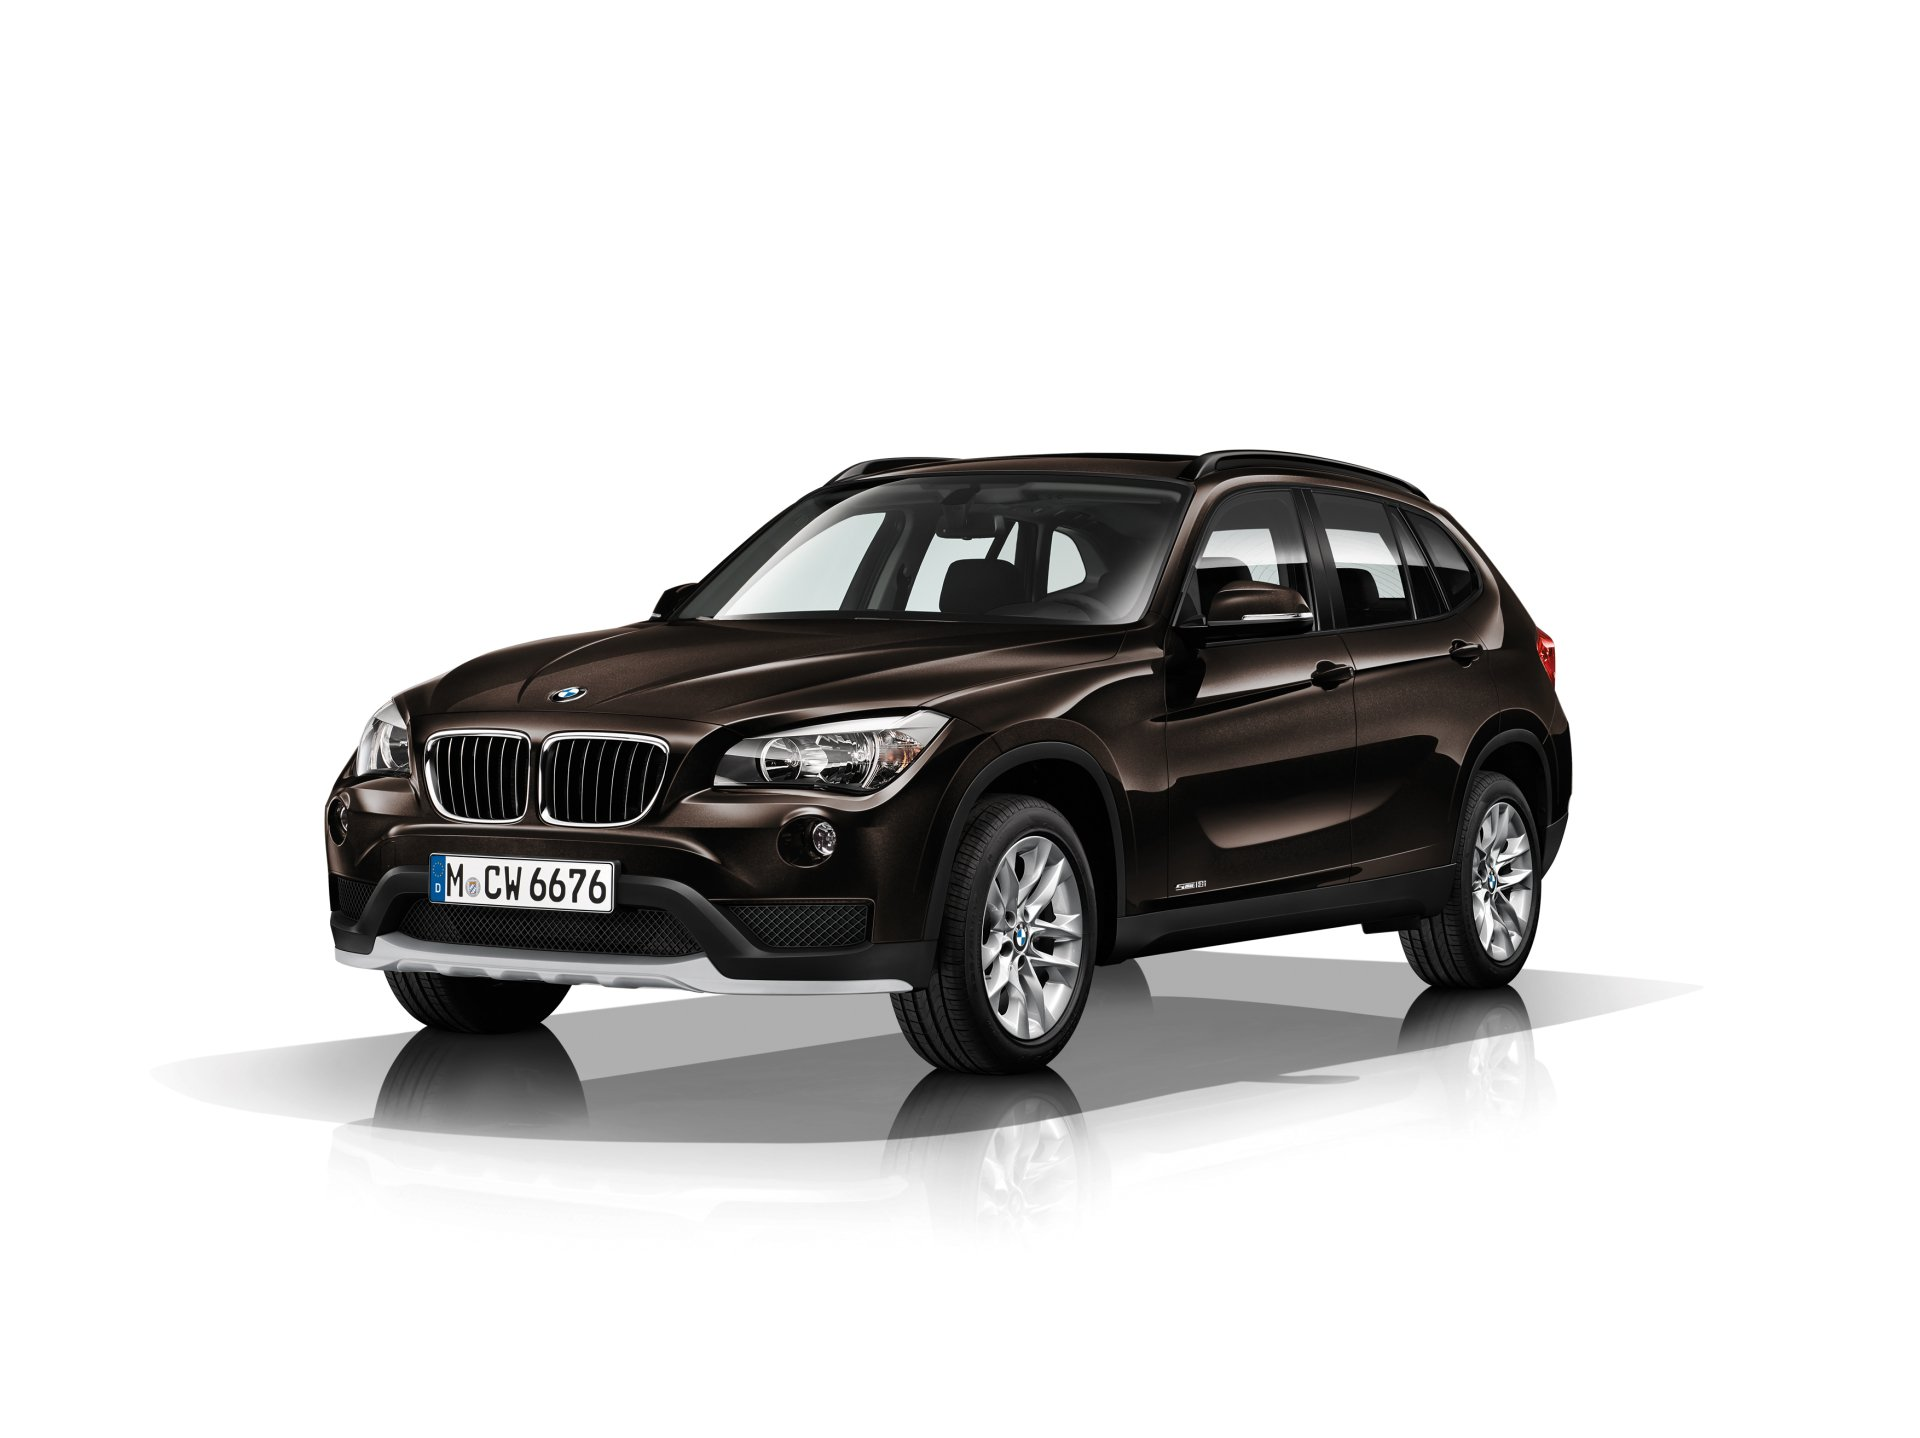 55 Bmw X1 Hd Wallpapers Background Images Wallpaper Abyss